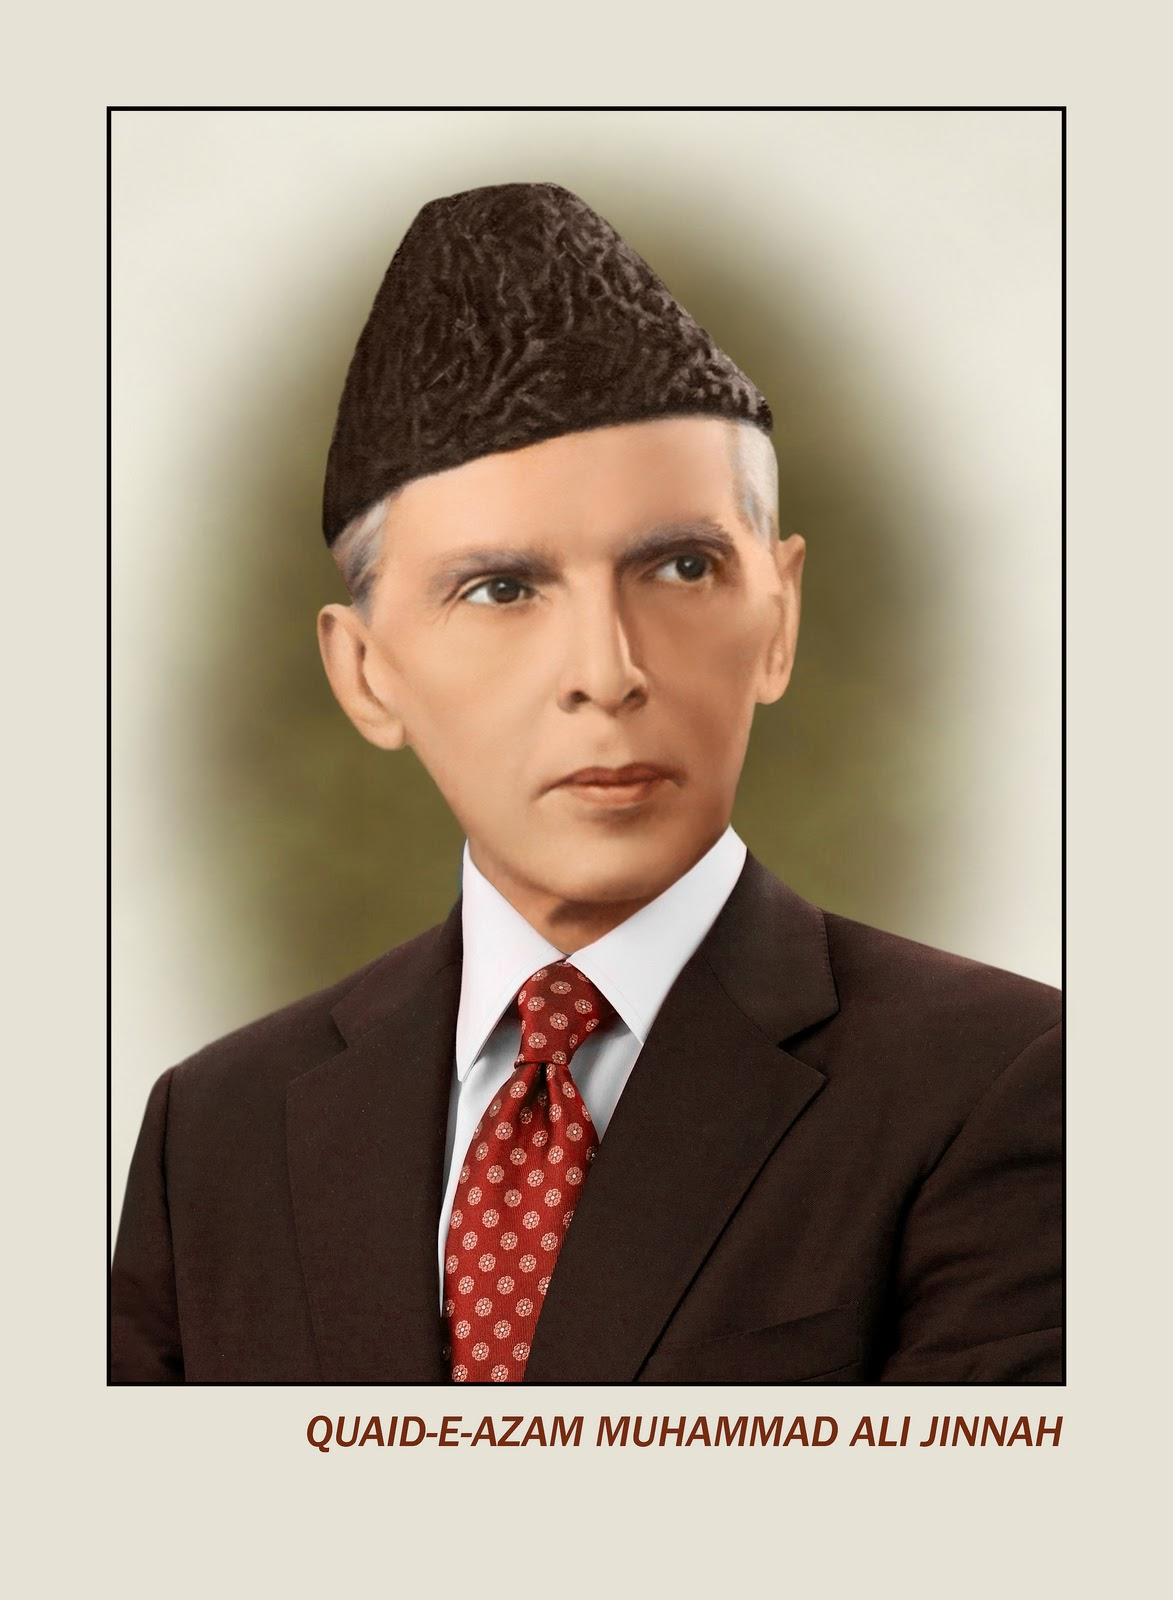 leadership styles of muhammad ali jinnah Leadership skills and style, main challenge(s) of the past, and how he / she  resolved it, his  mr muhammad ali jinnah, mr gandhi, mr mao.